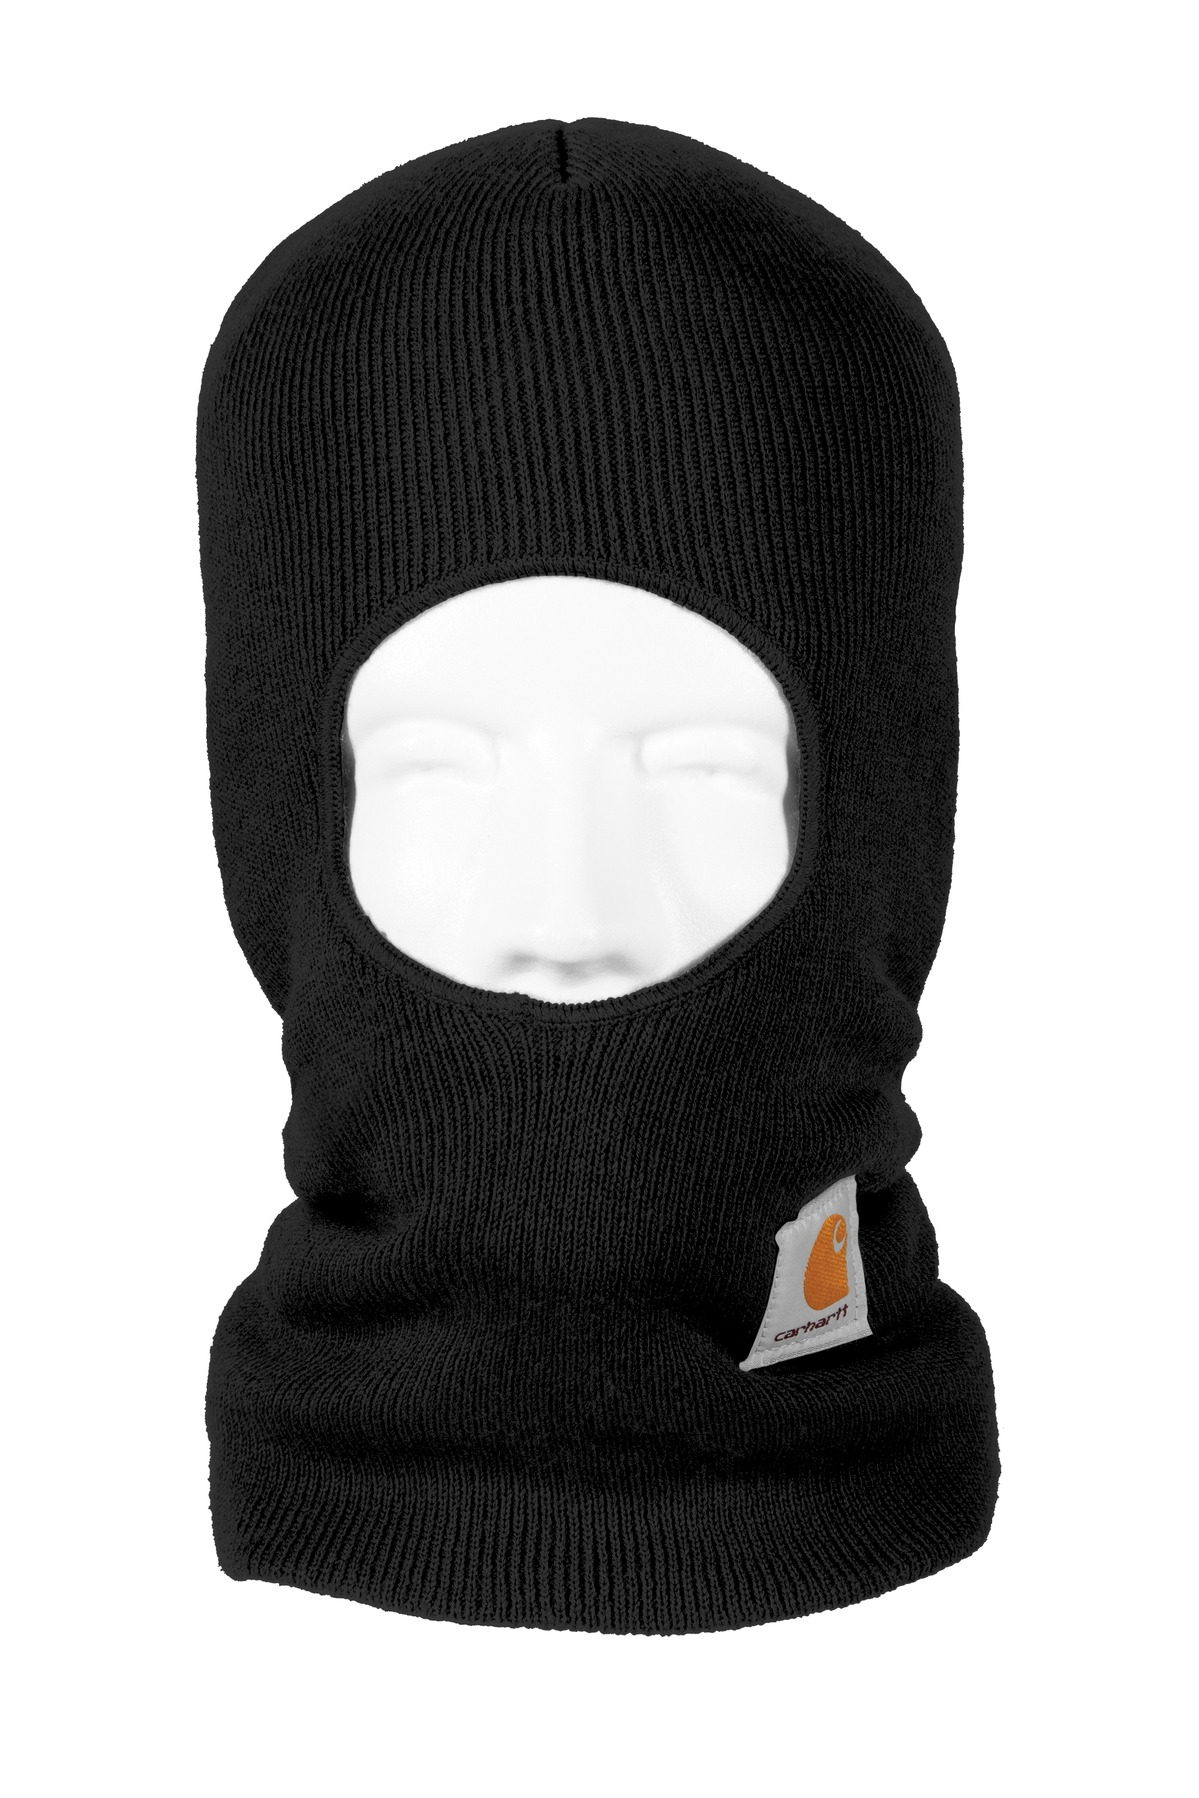 Carhartt  ®  Face Mask. CTA161 - Black